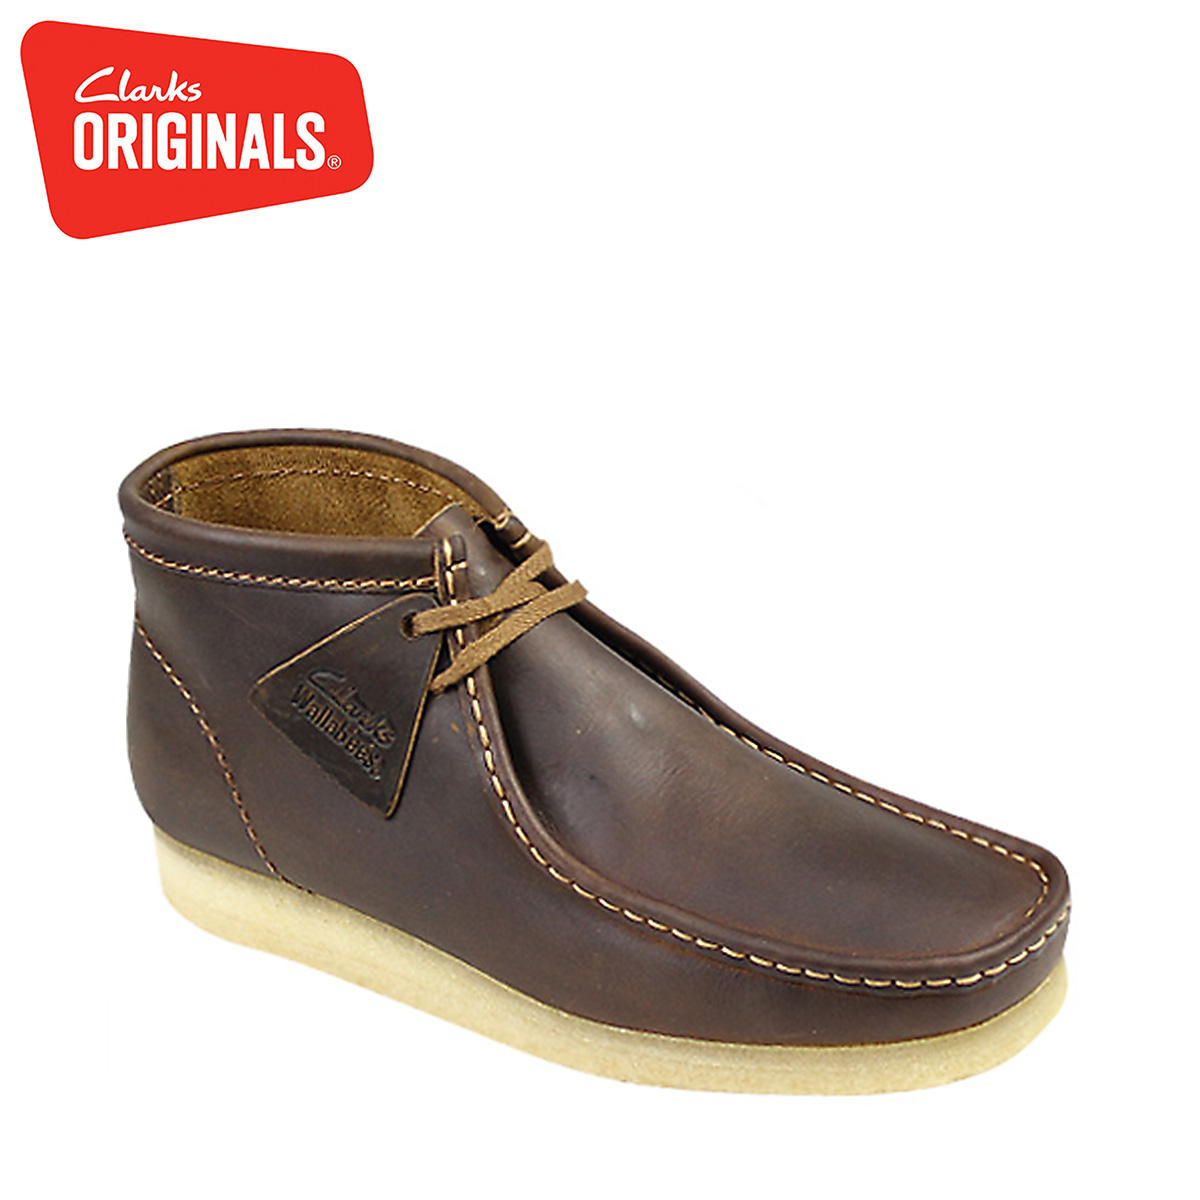 cb73dad9e84 ALLSPORTS: Clarks originals Clarks ORIGINALS Wallaby boots WALLABEE ...